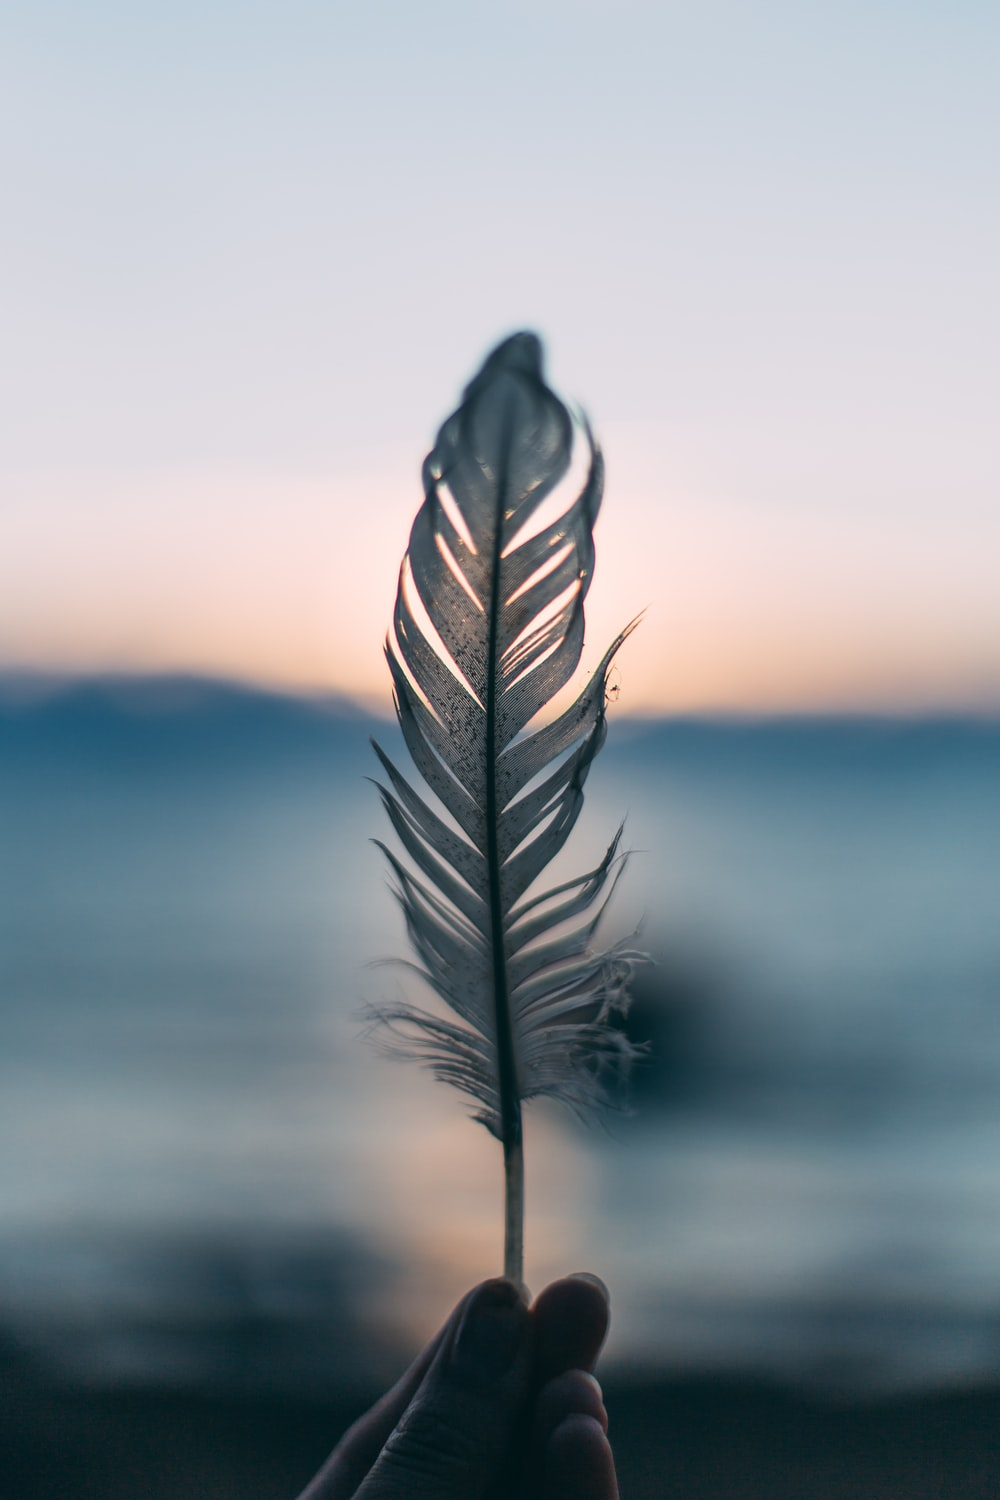 tilt shift lens photography of person holding white feather